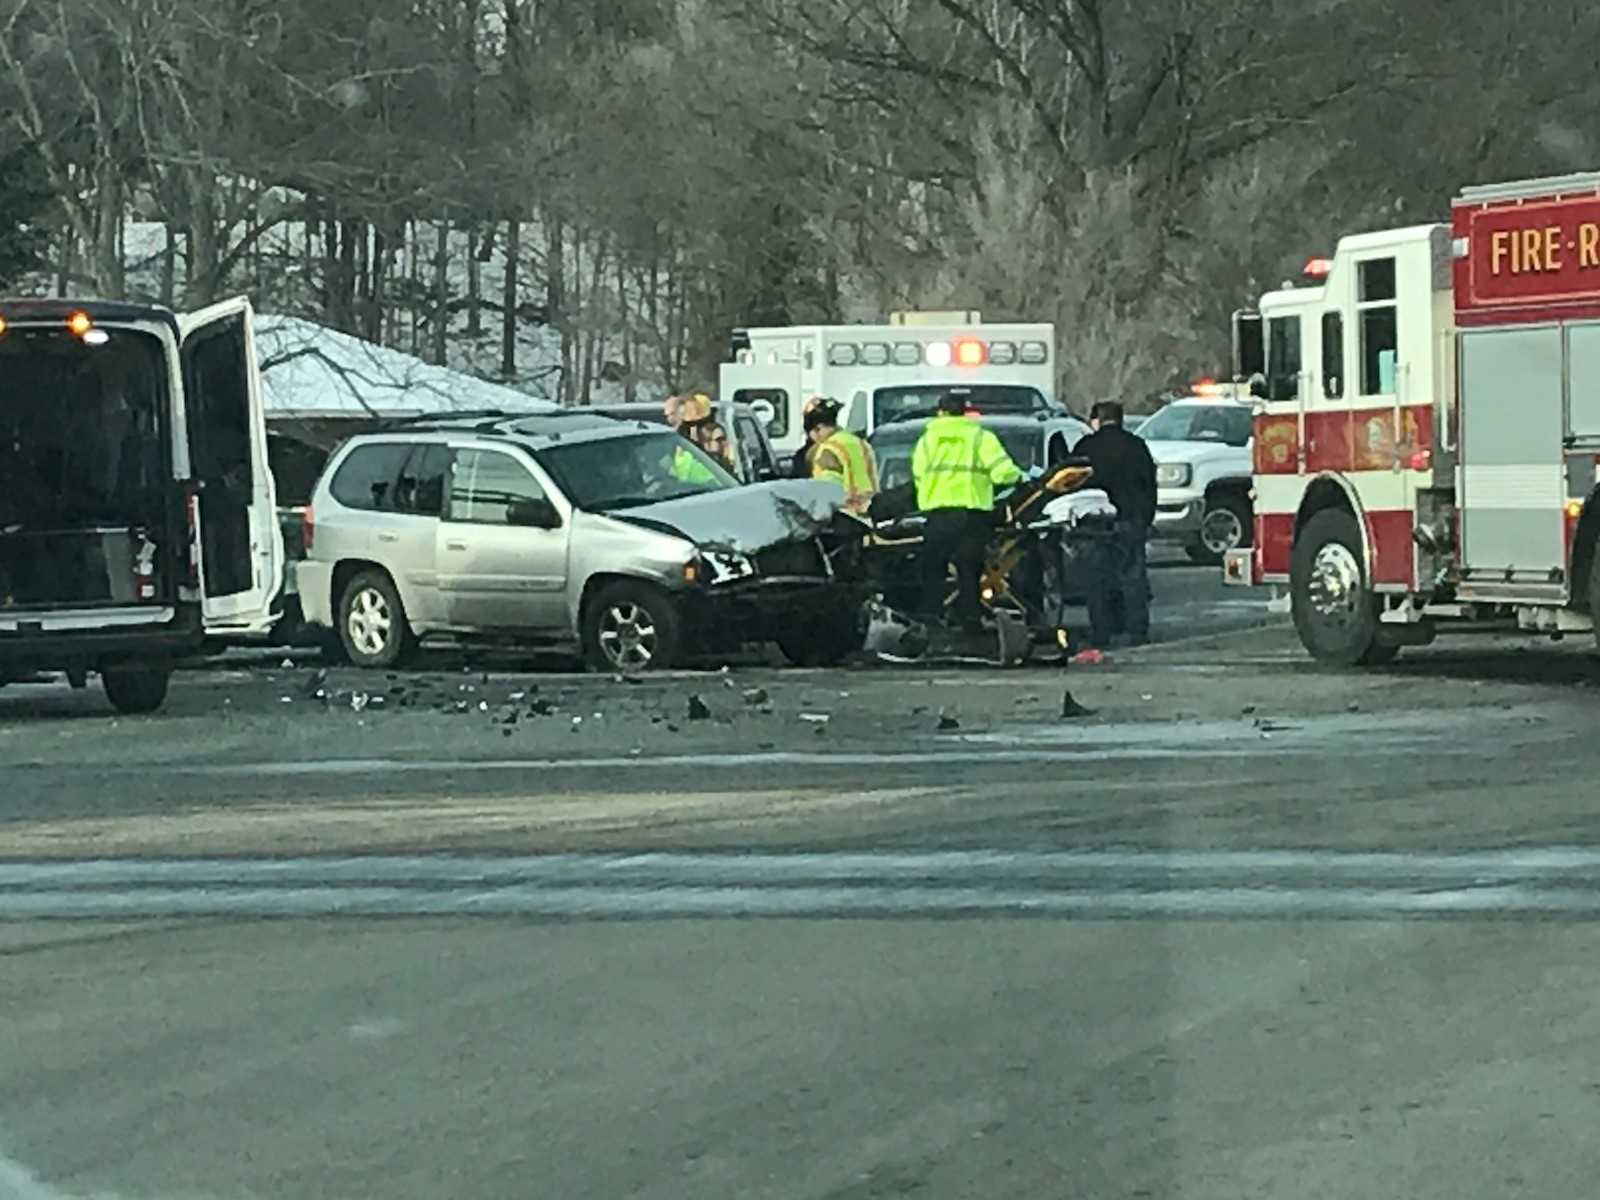 One person is reported dead following a four-car crash that forced the closure of the intersection of Sprinkle Road and East Main Street. (Contributed)<p></p>